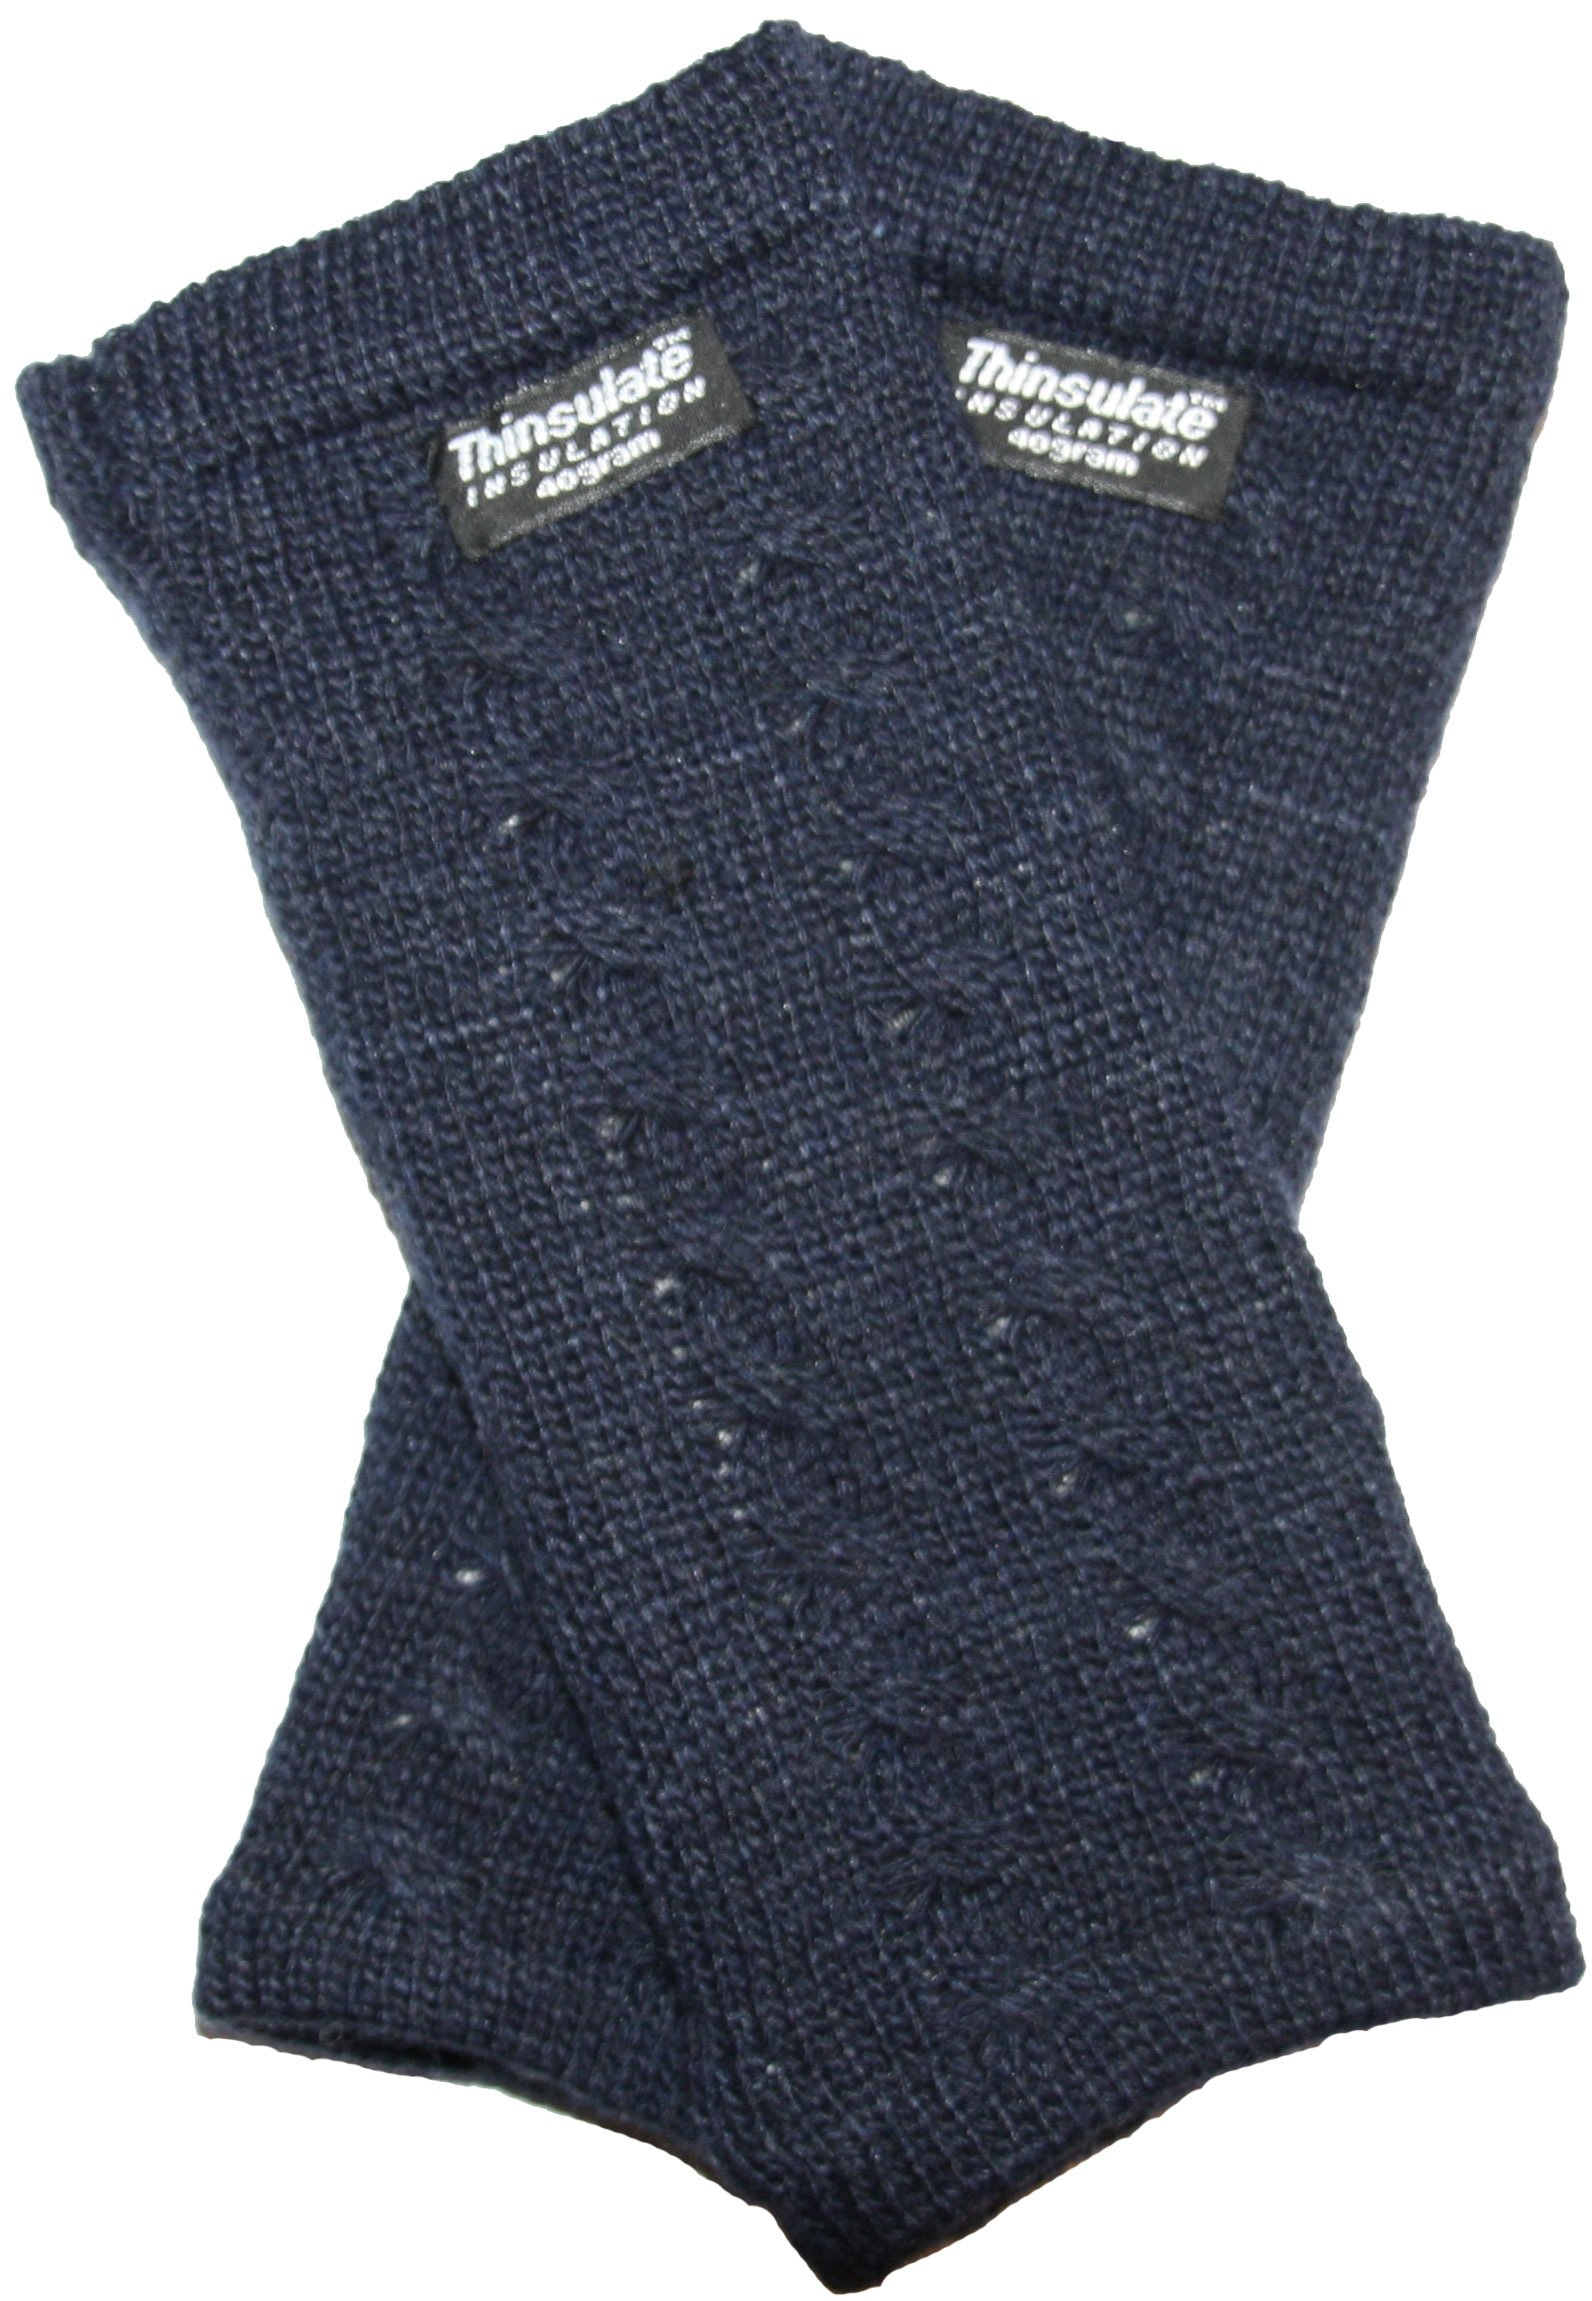 EEM knitted arm warmers DIANA made of 100% wool, Thinsulate lining, plait pattern, navy by EEM (Image #3)